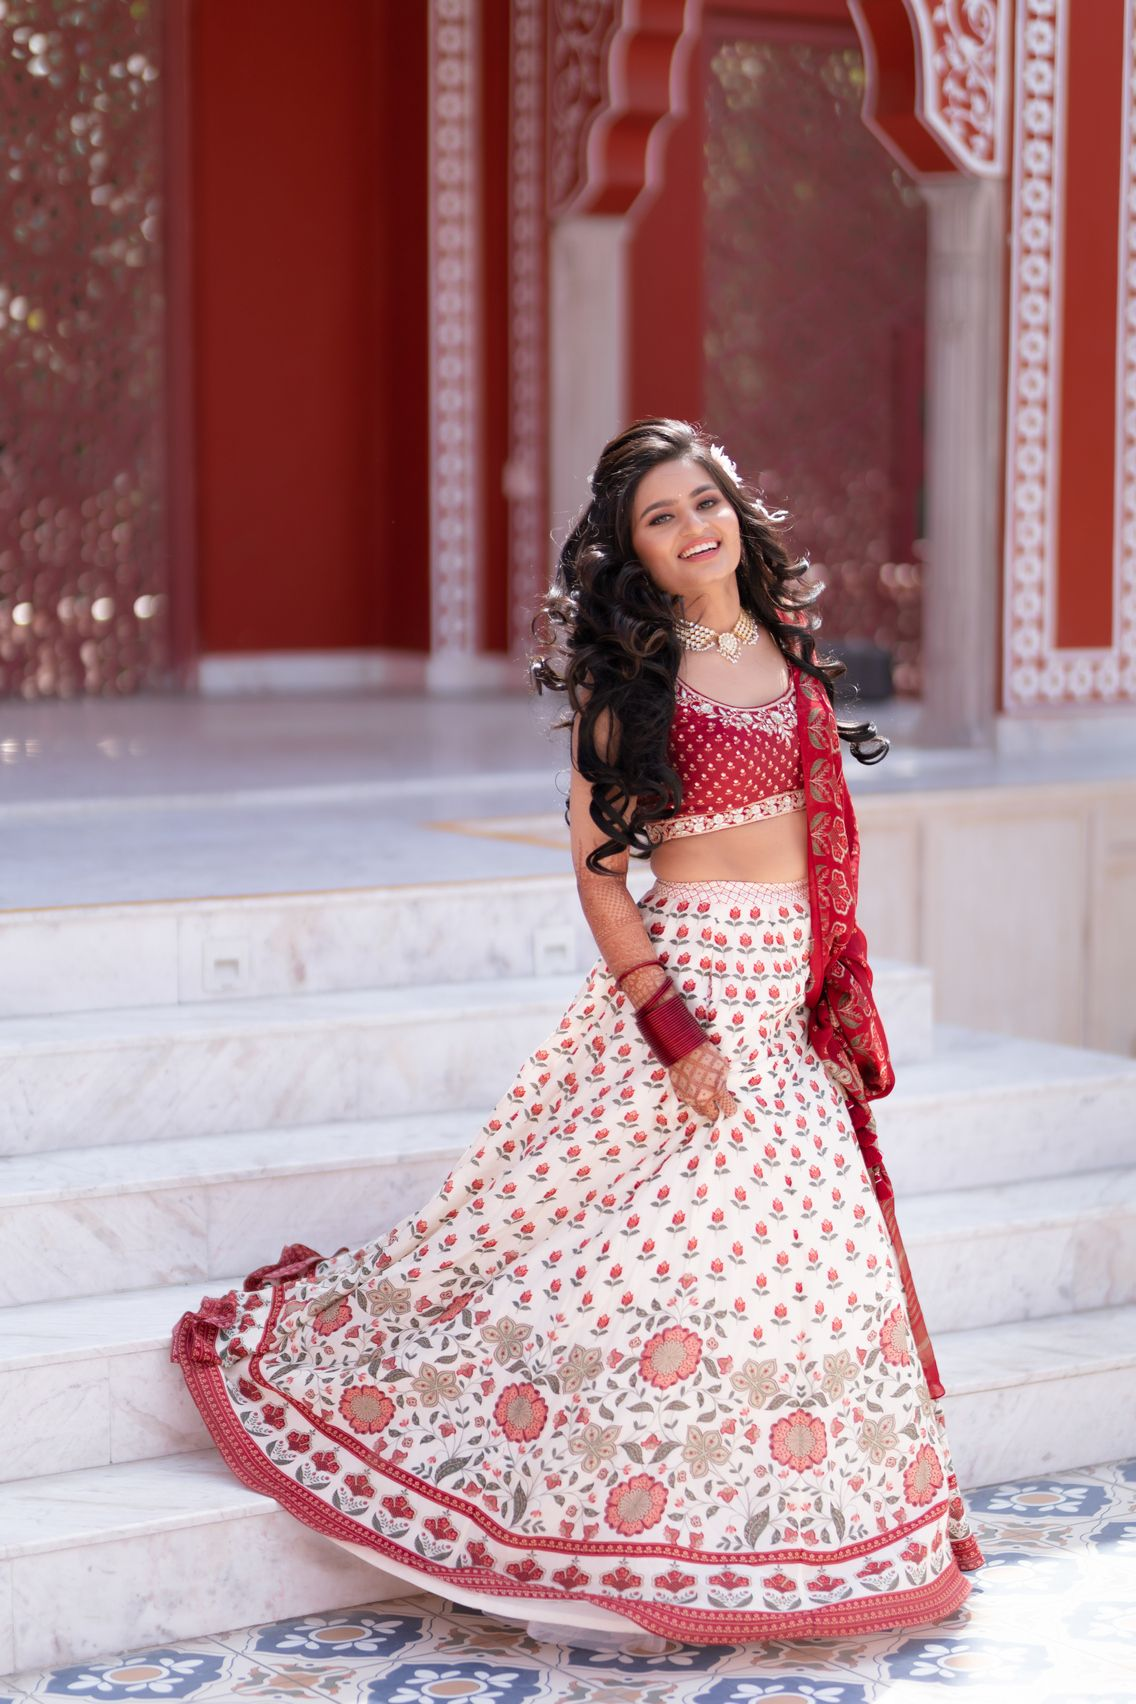 Mehendi outfit for brides to be